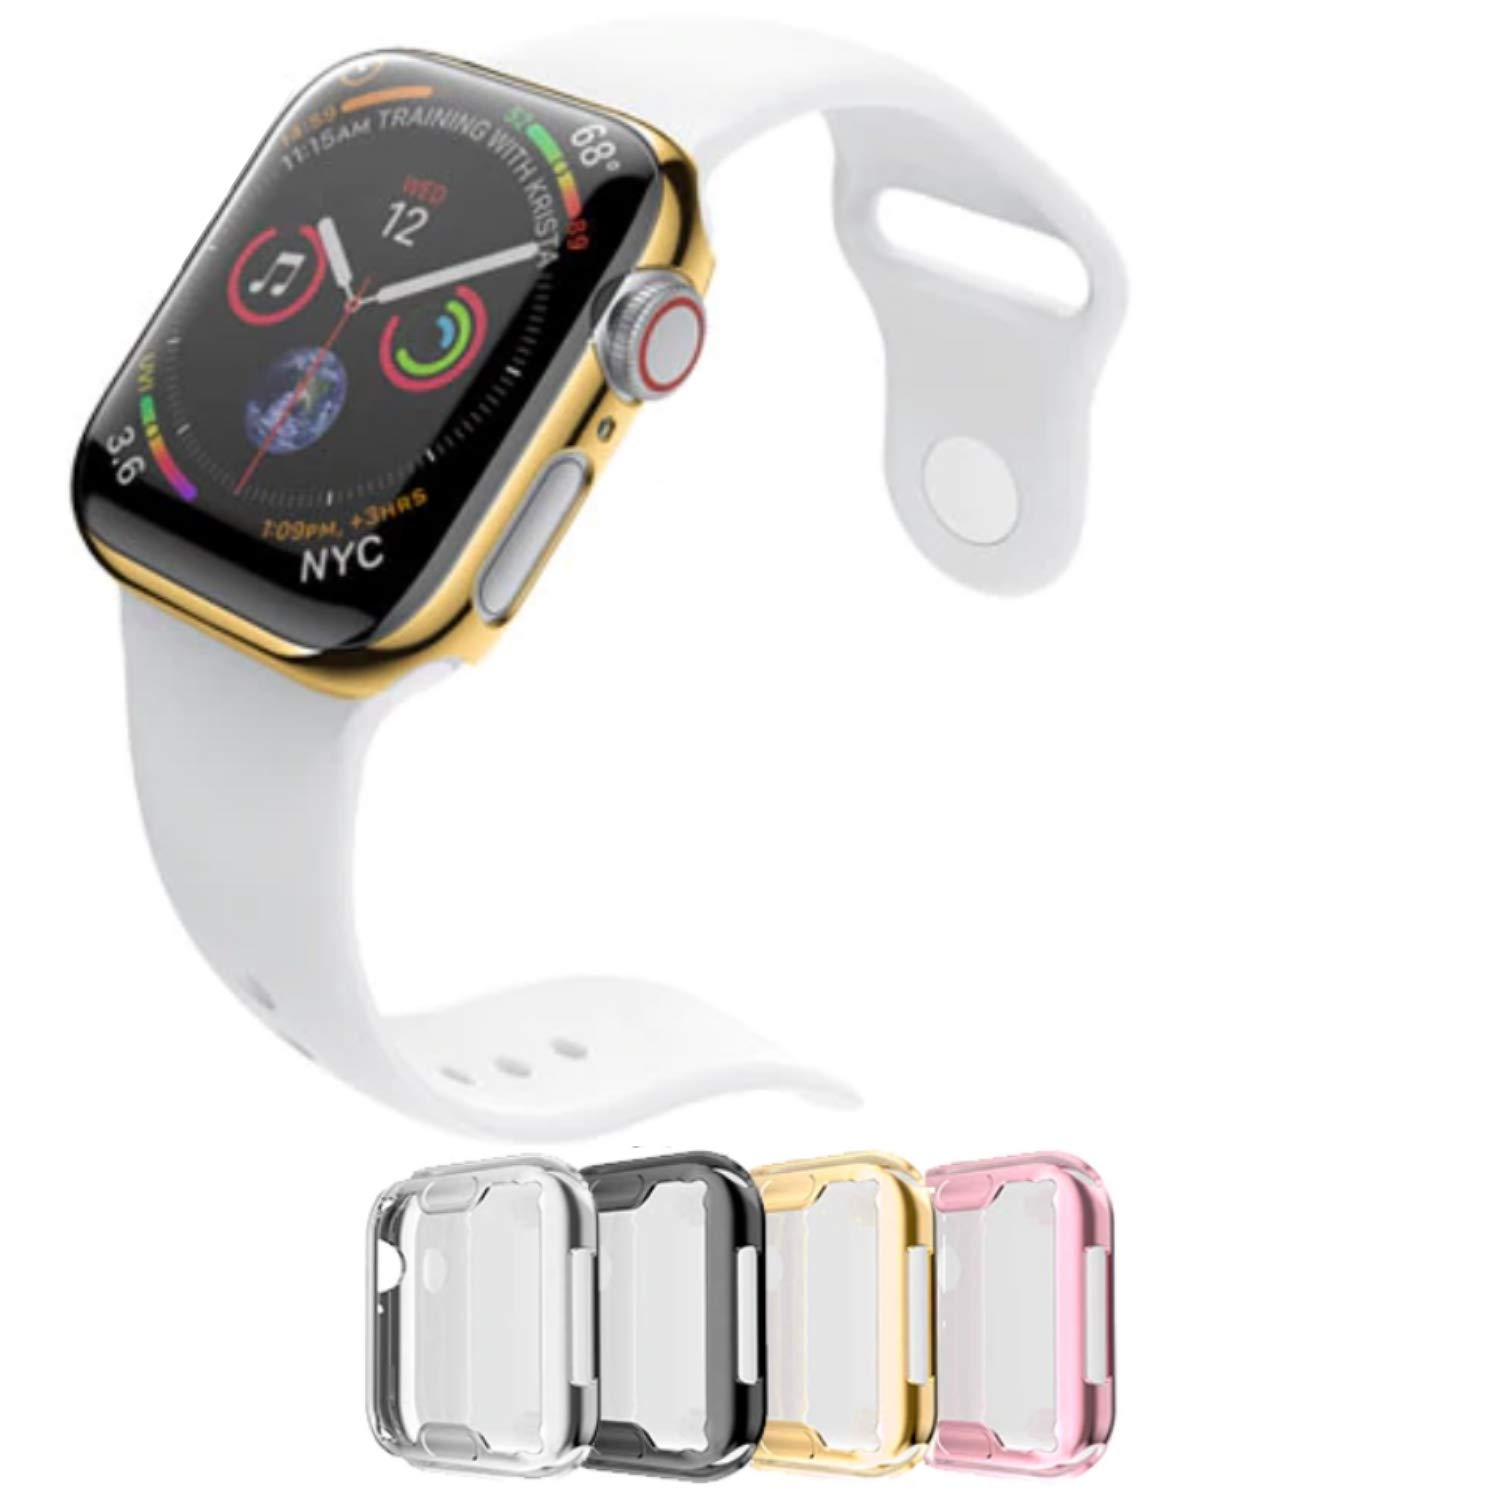 Case for Apple Watch 40m Series 4 Built-in Screen Protector All Around Protective Cover 4 Pack Bundle Black, Silver, Gold, Rose Gold HD Clear Ultra-Thin 40mm iWatch 4 Premium TPU Case by iV Industry by iV Industry